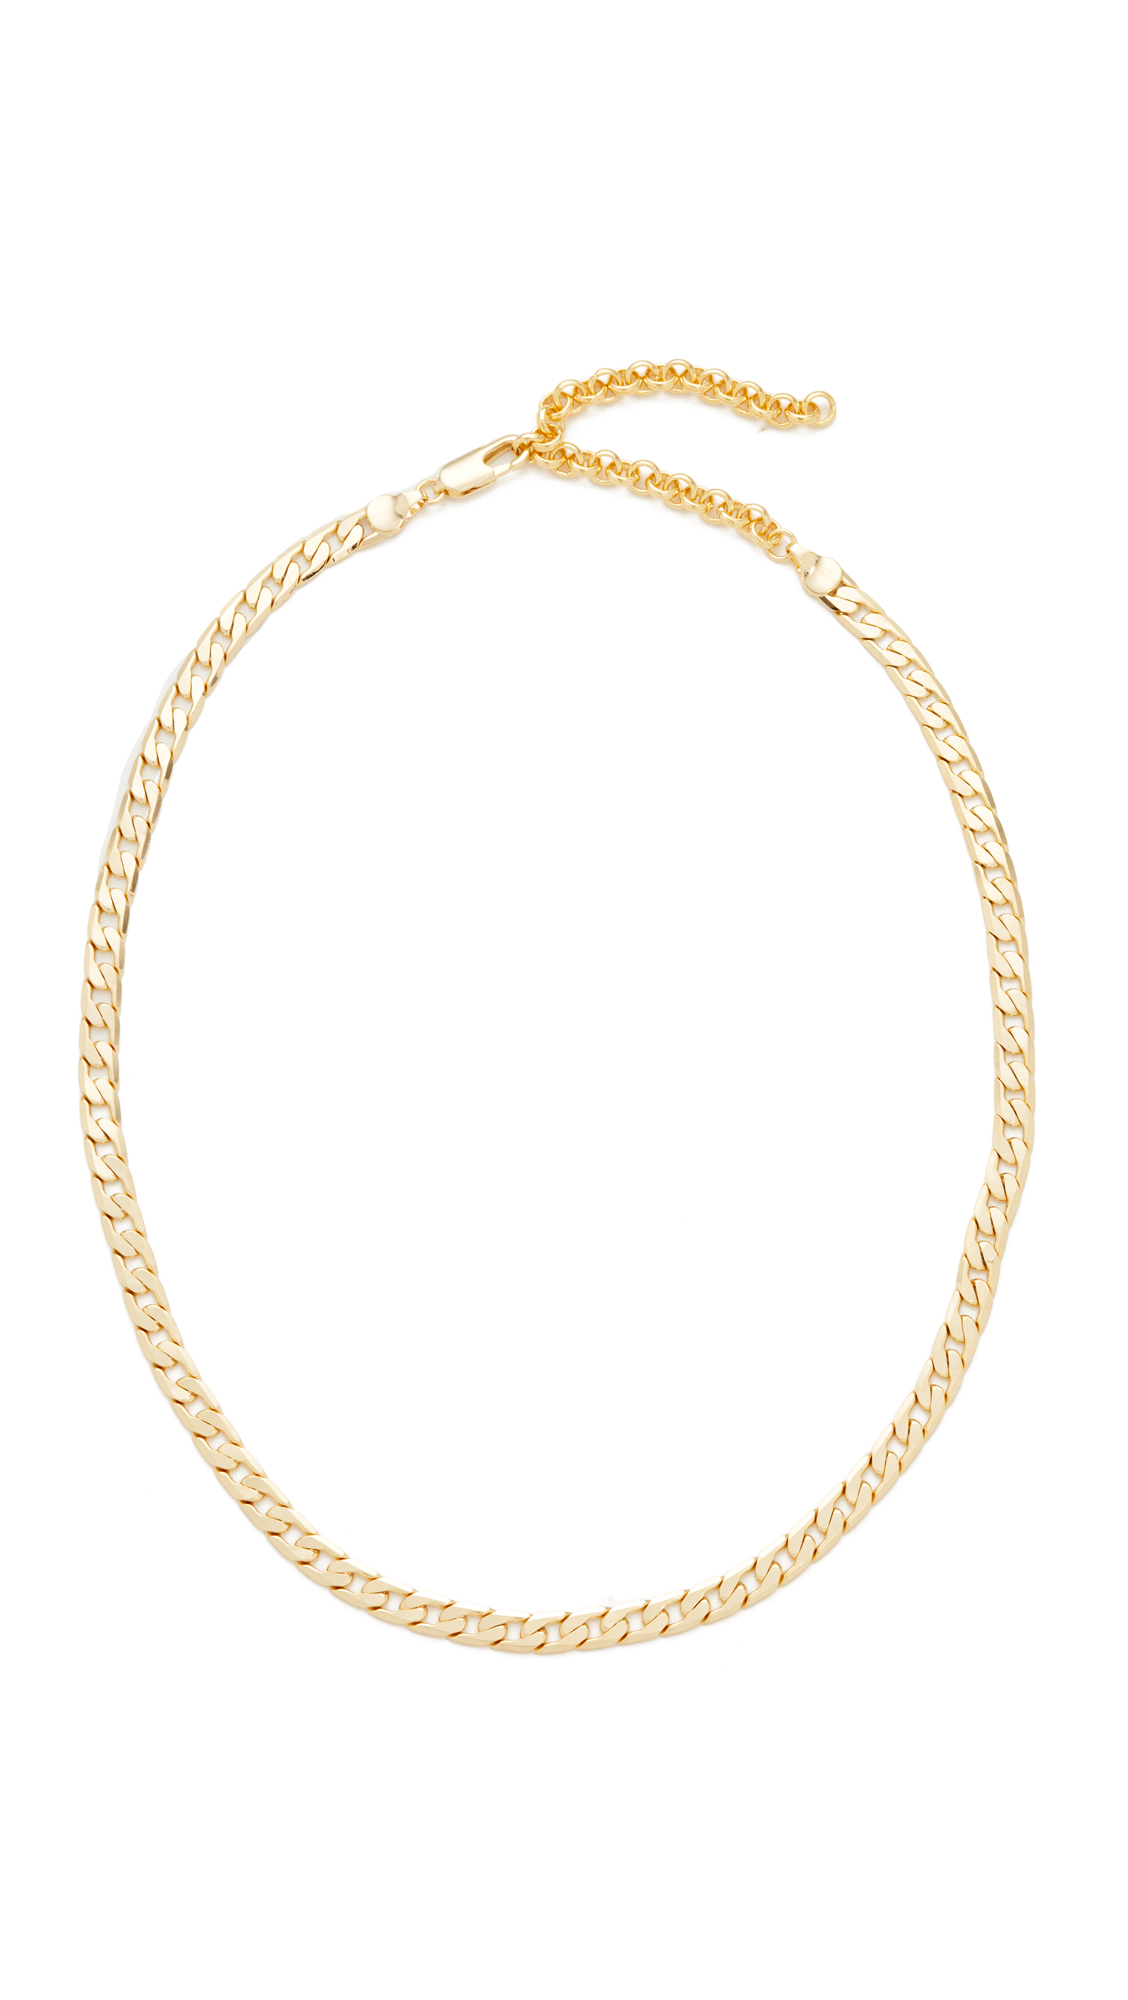 Amber Sceats Chelsy Necklace - Gold